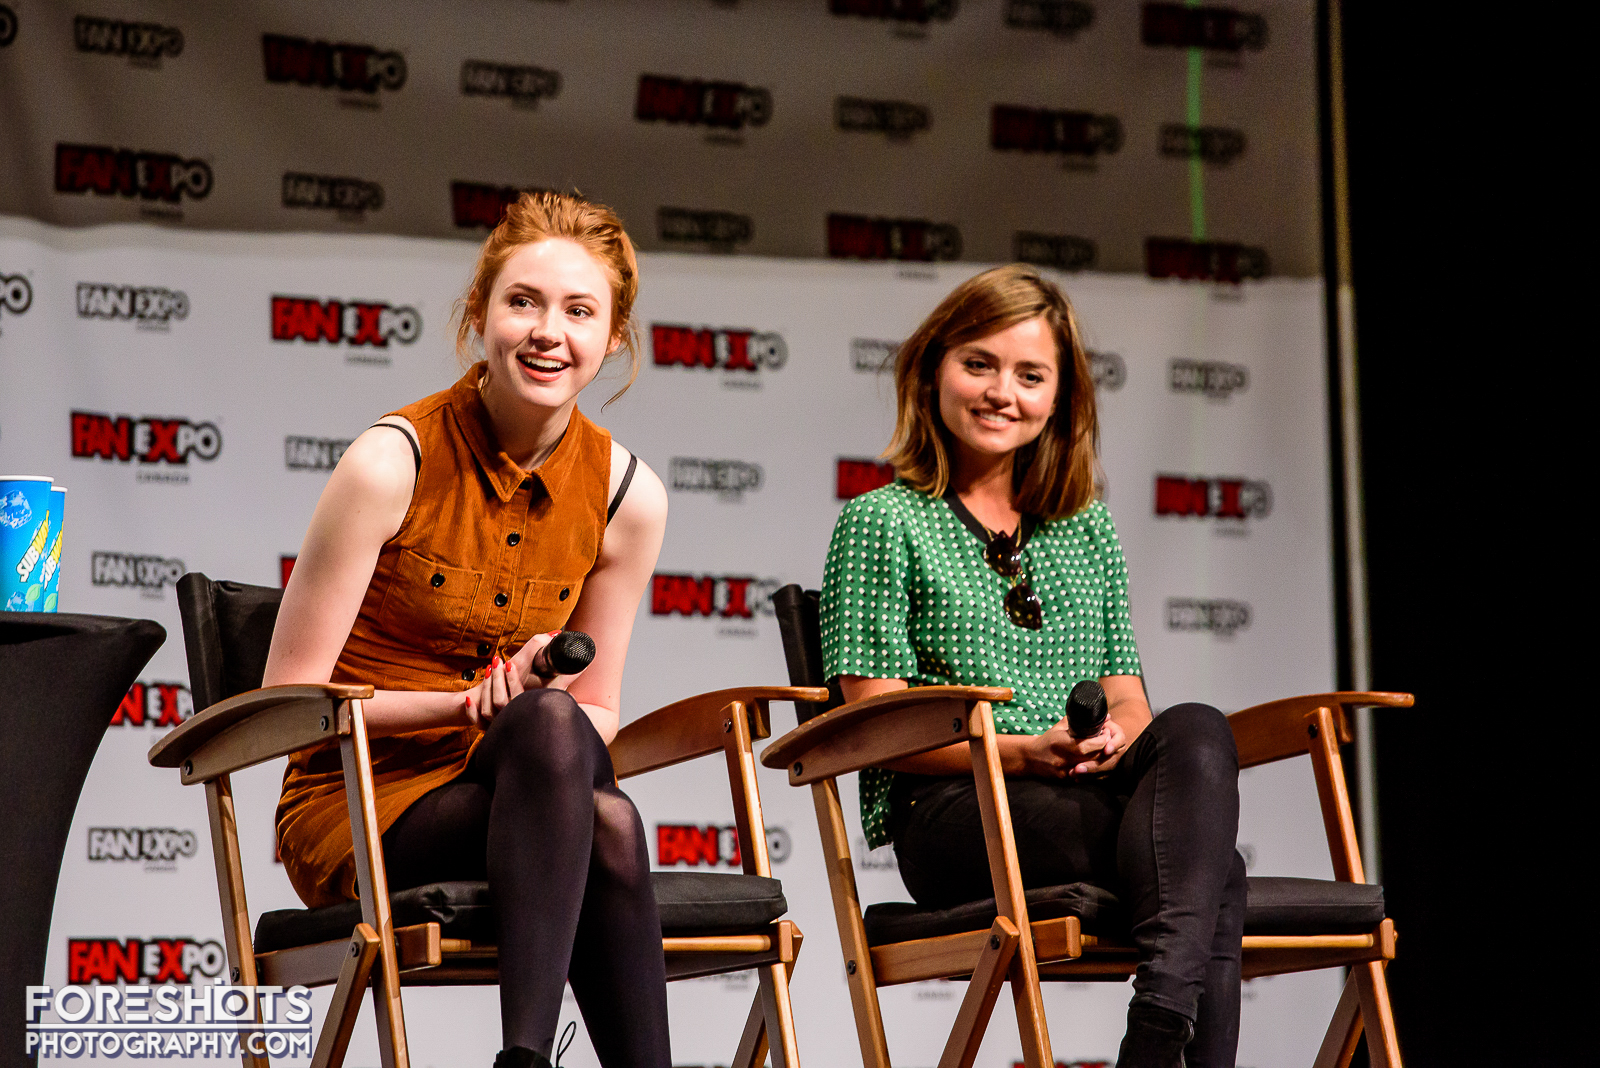 Doctor Who's Karen Gillan and Jenna Coleman do a Q&A at Fan Expo Canada